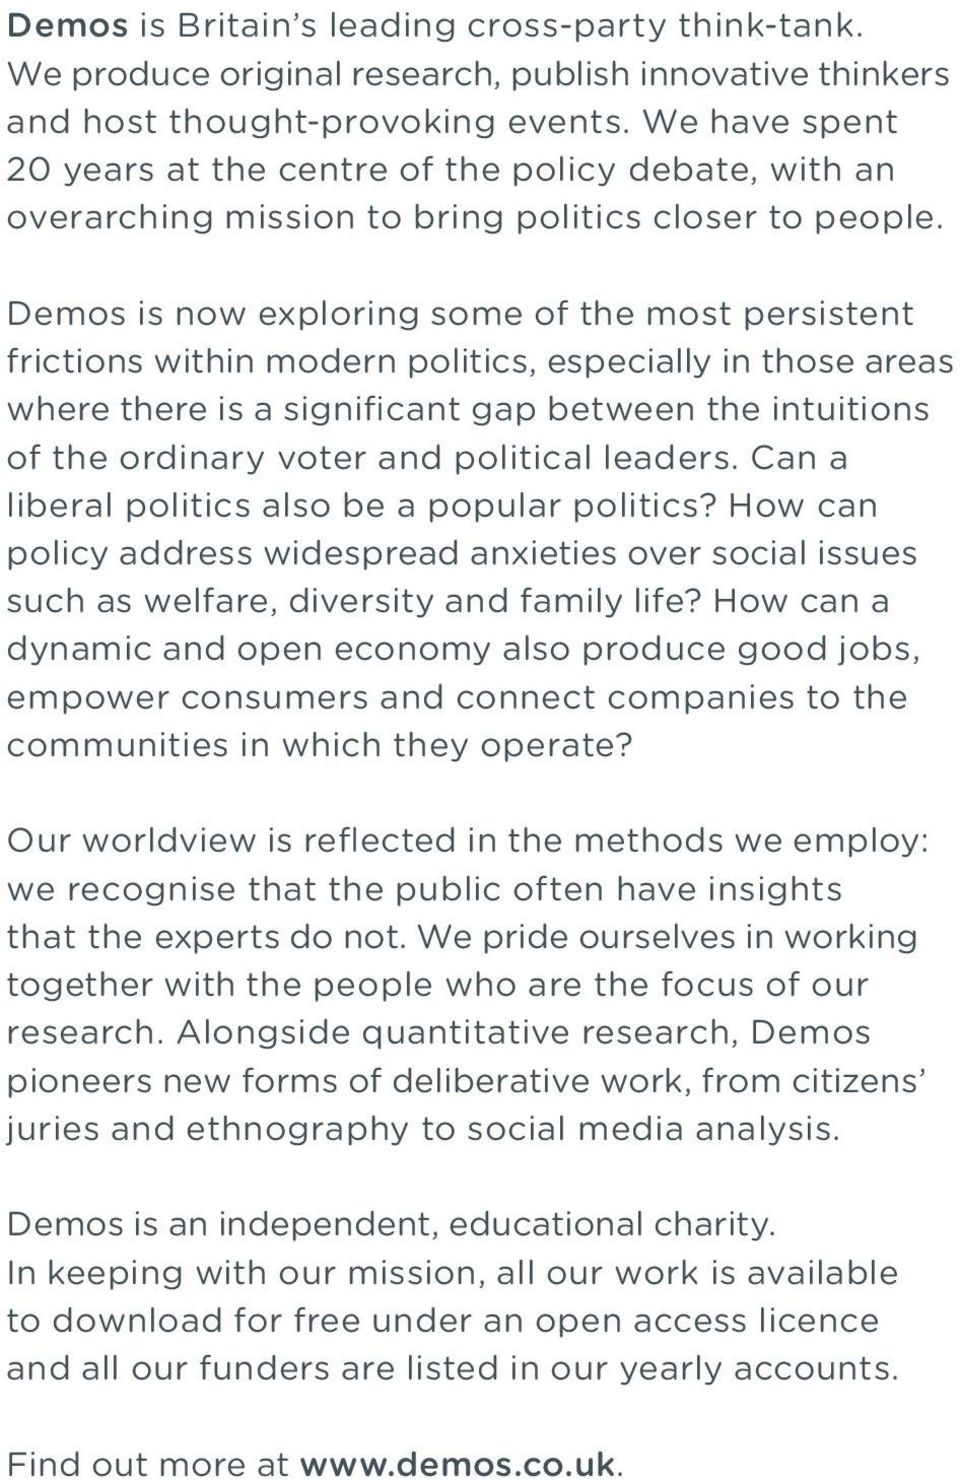 Demos is now exploring some of the most persistent frictions within modern politics, especially in those areas where there is a significant gap between the intuitions of the ordinary voter and